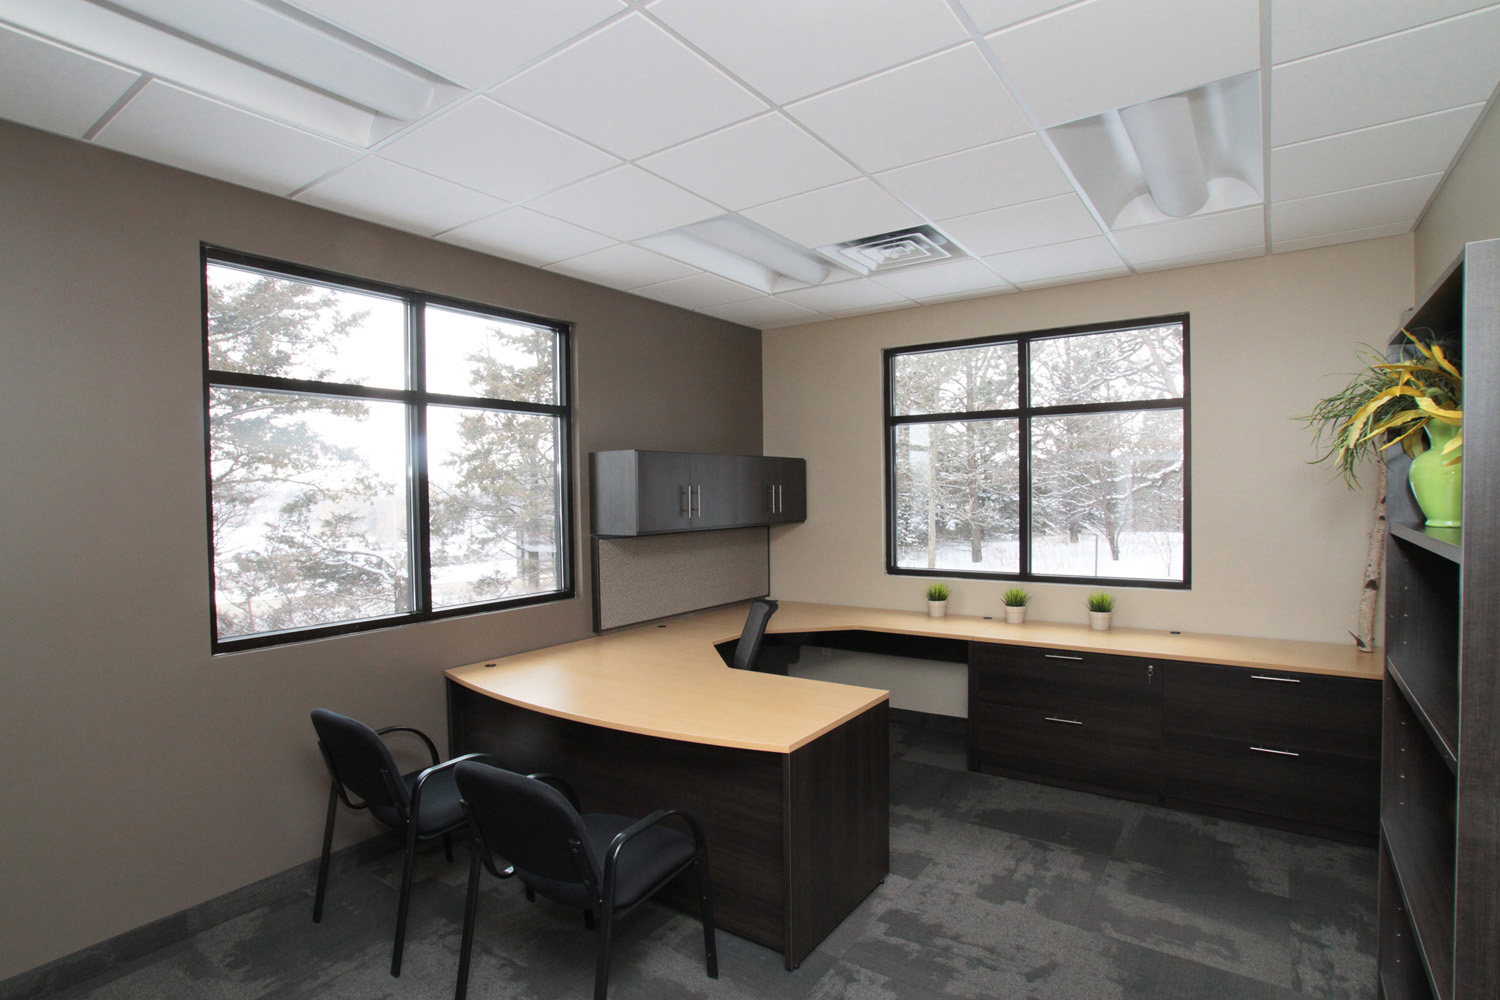 Office space design mankato new used office for Office space interior design ideas